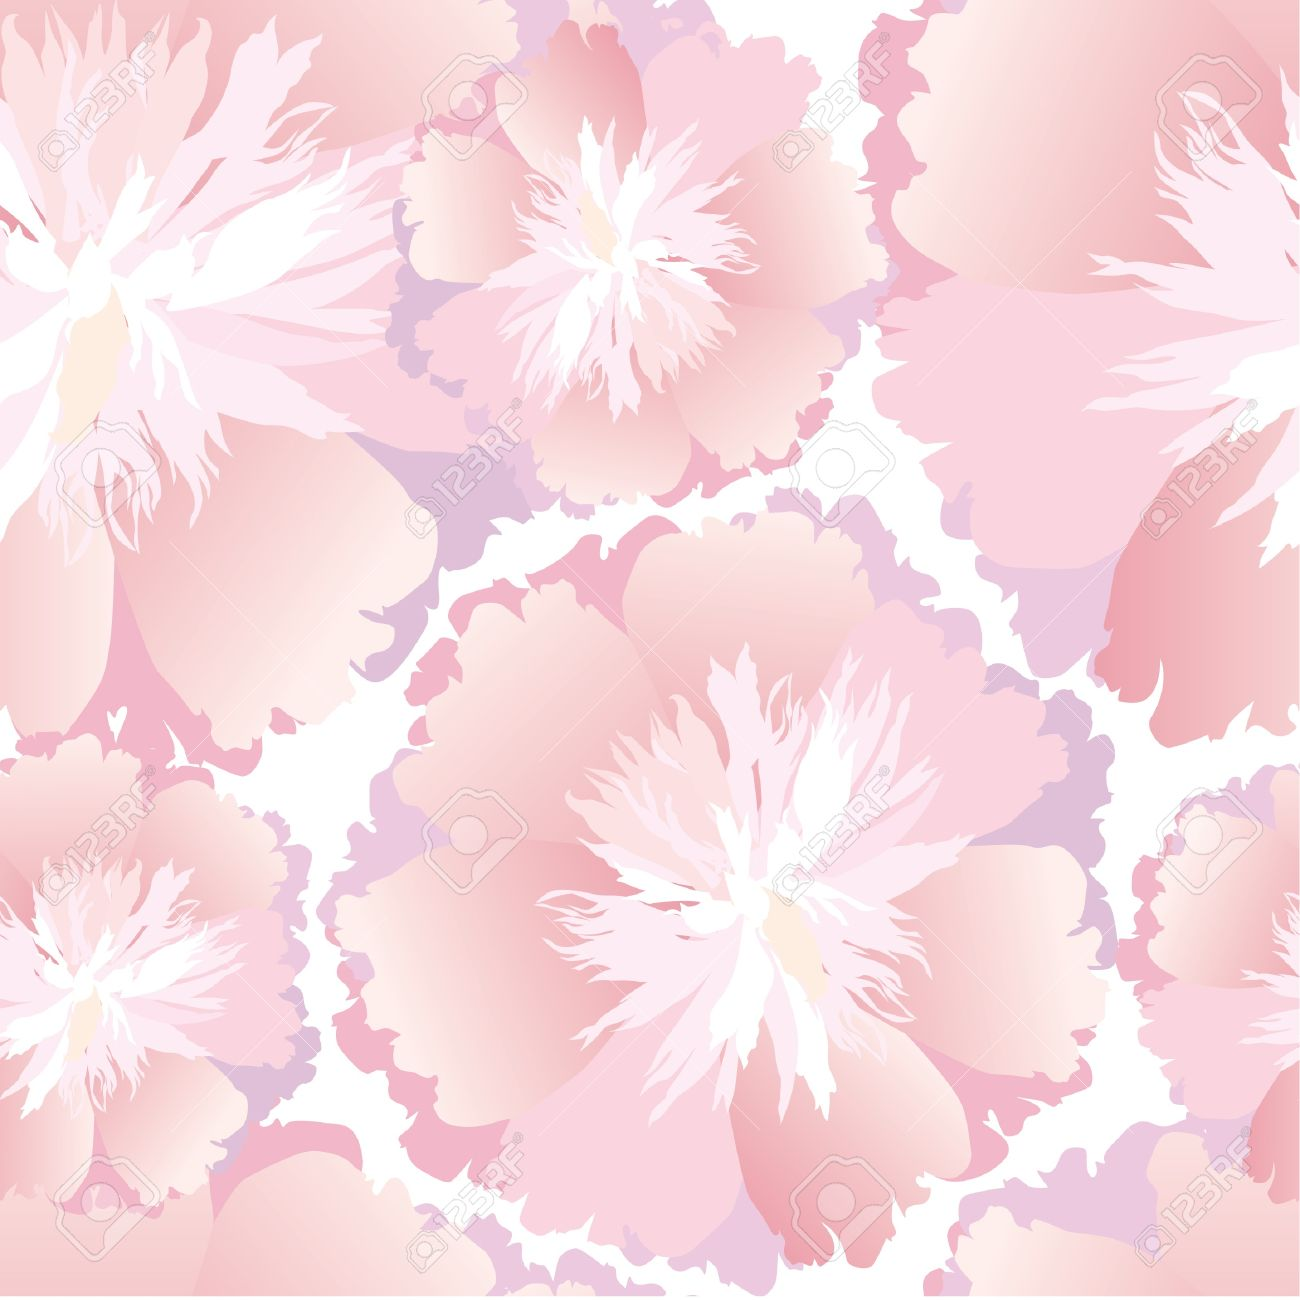 Pink floral seamless vector background floral hrysanthemum seamless - Floral Seamless Pattern White And Pink Flower Background Stock Vector 16139988